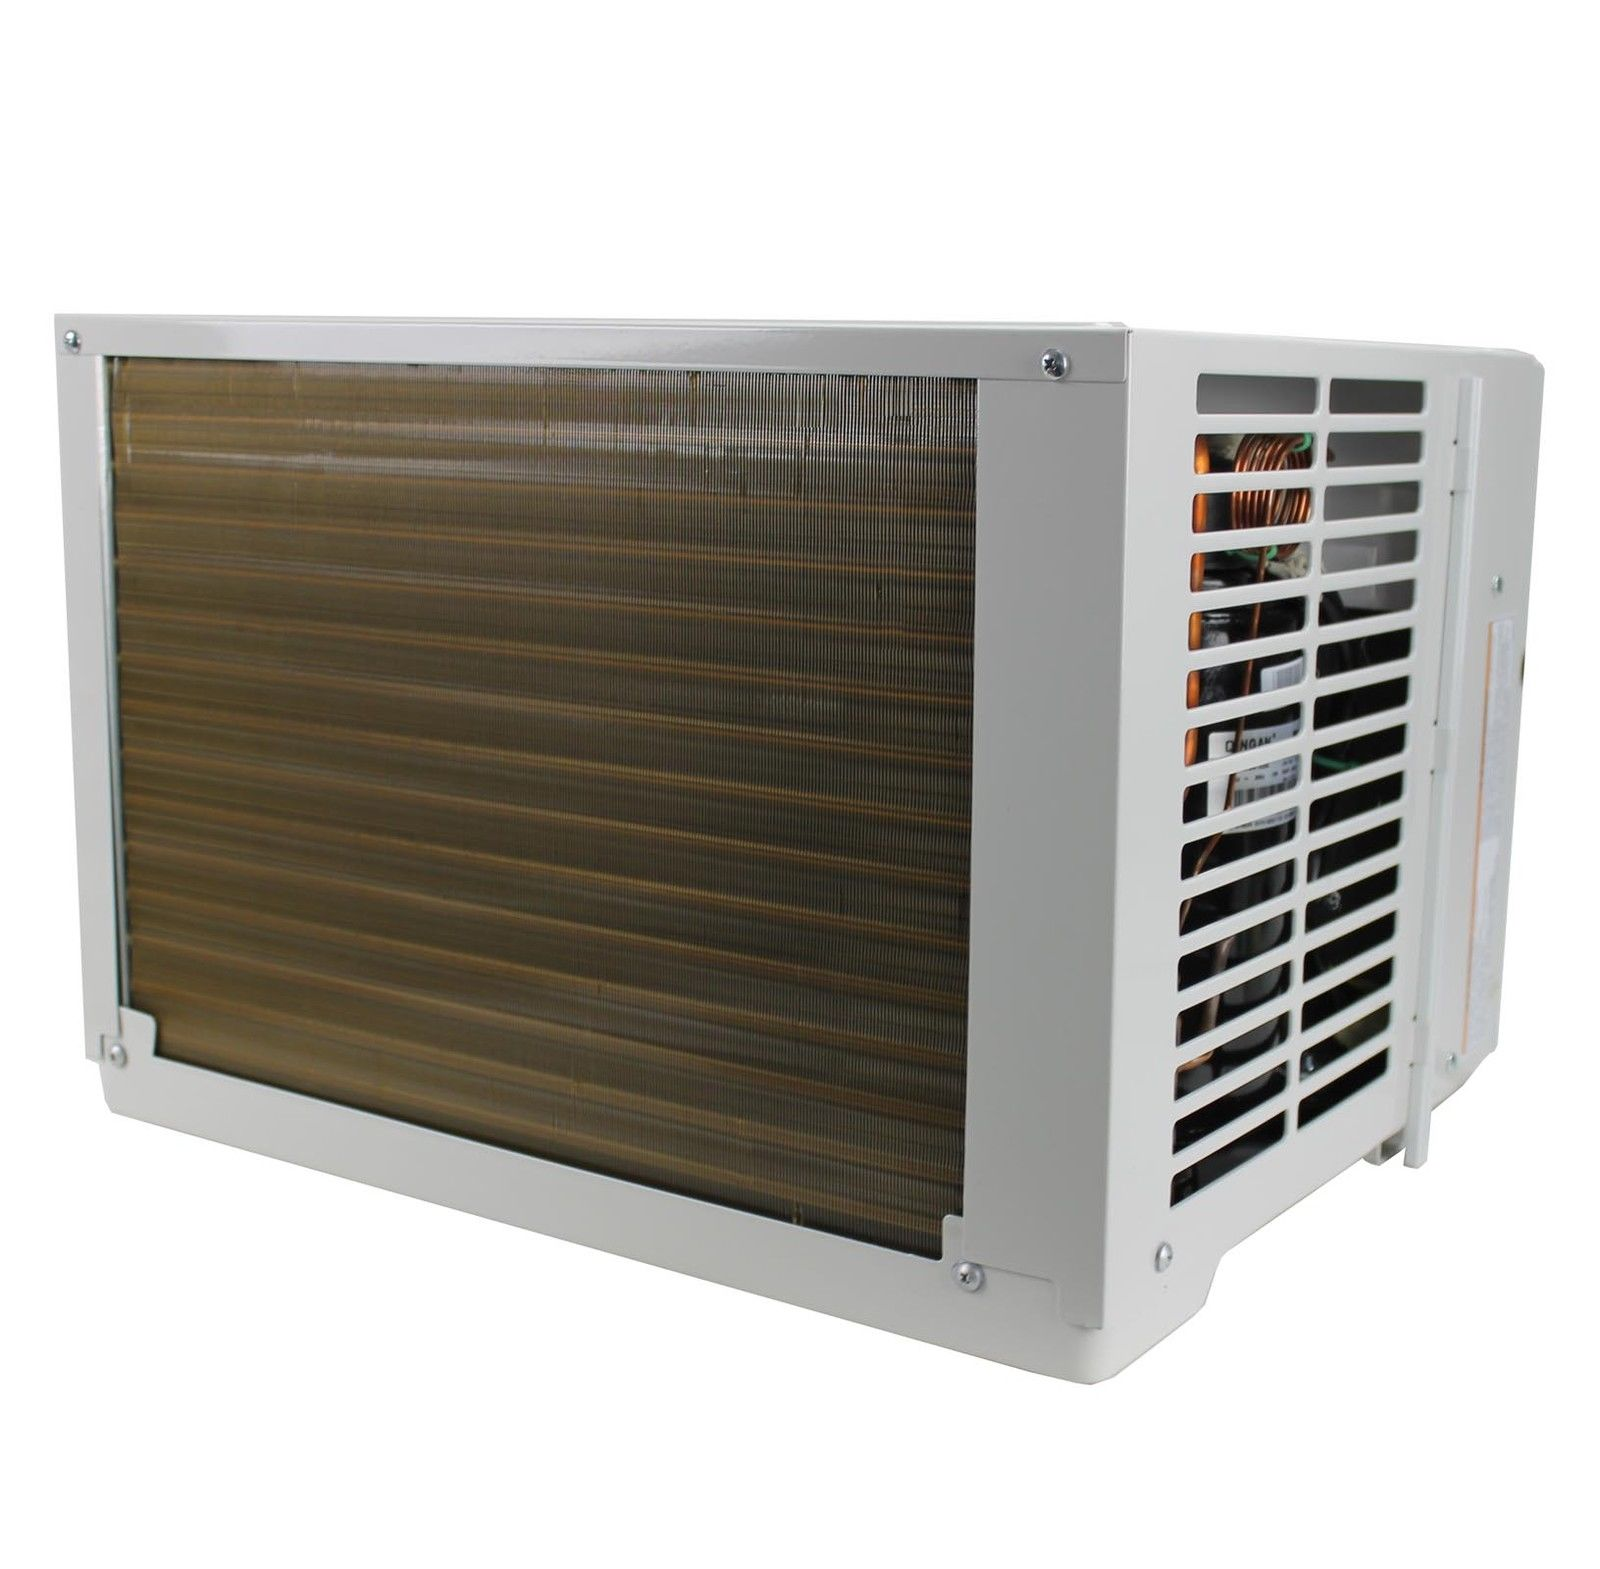 Cool living cl wac 15 electronic window air conditioner for 15 width window air conditioner